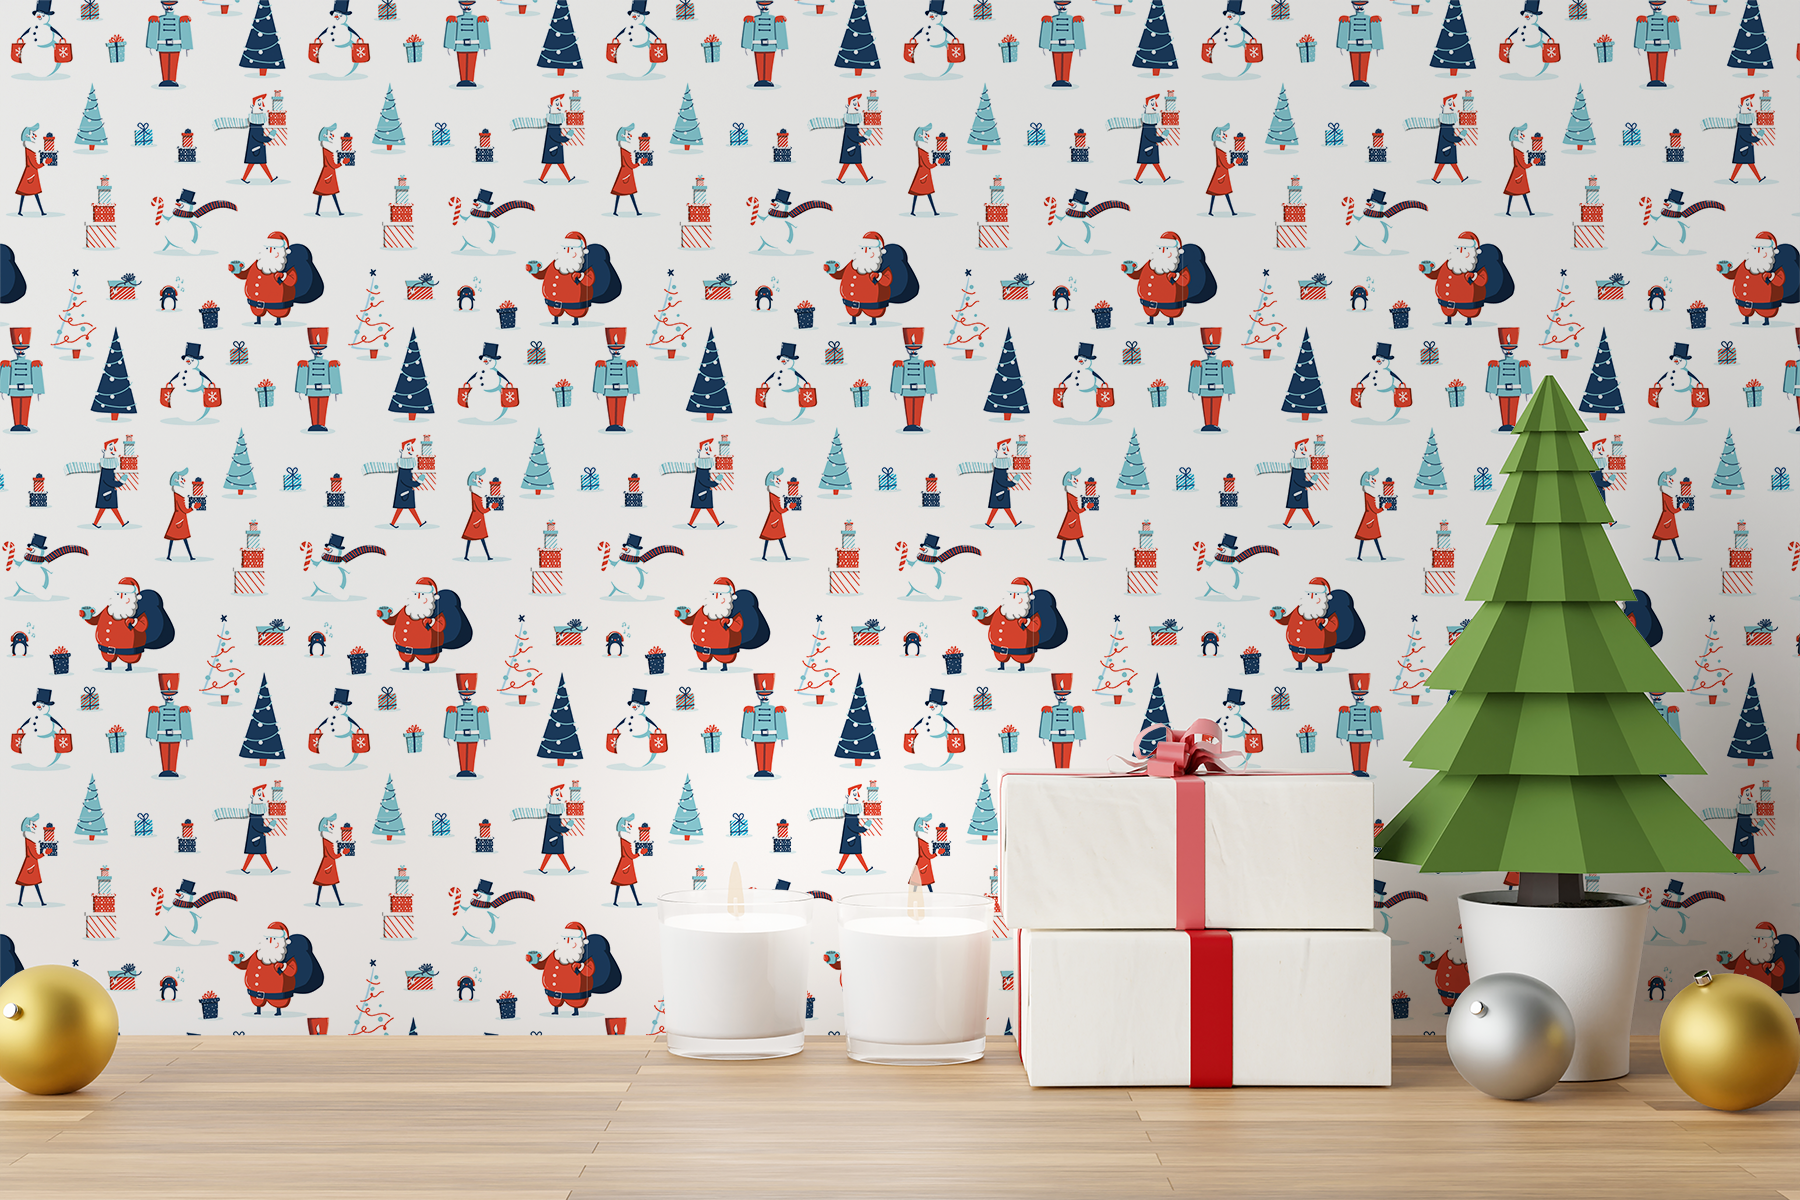 Free Christmas Wall Decal Mockup